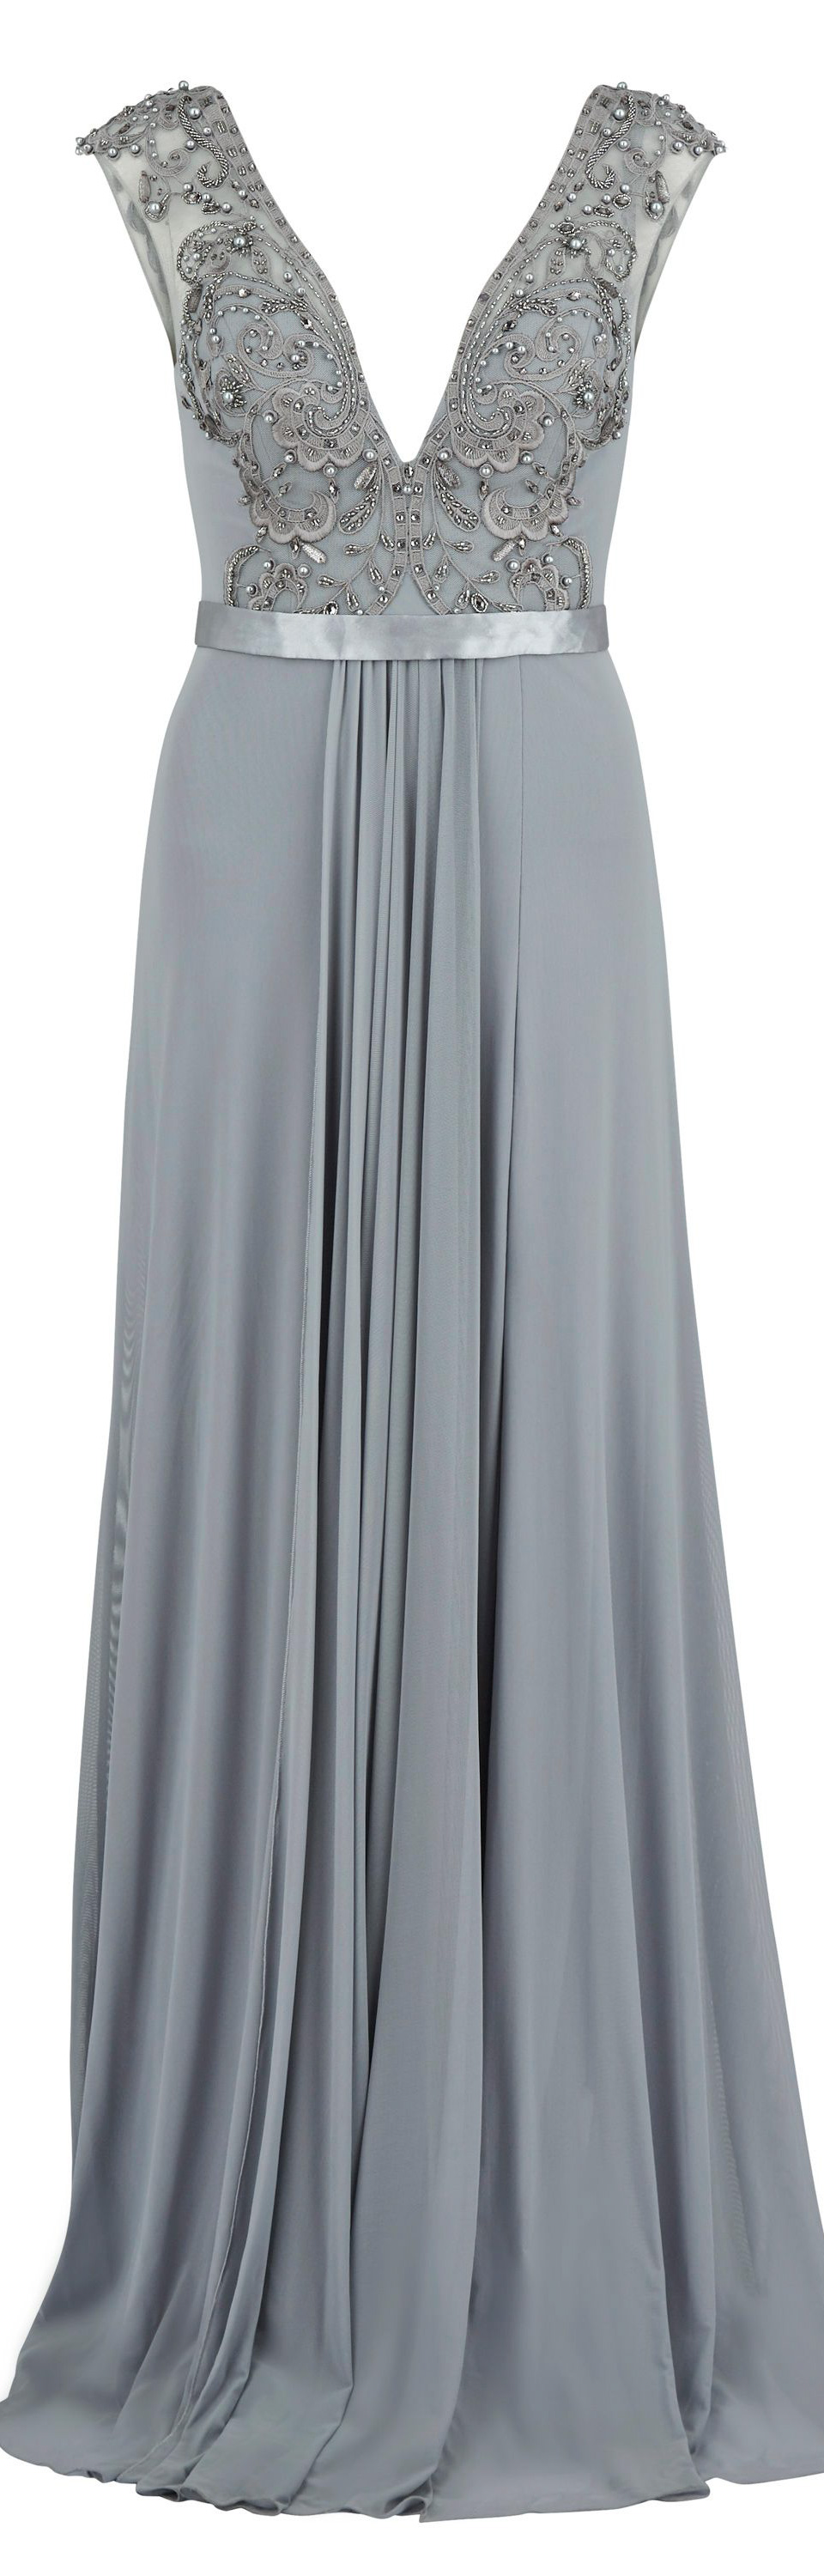 Gina Bacconi Long mesh dress with beaded applique | ✤✤ Outfit ...